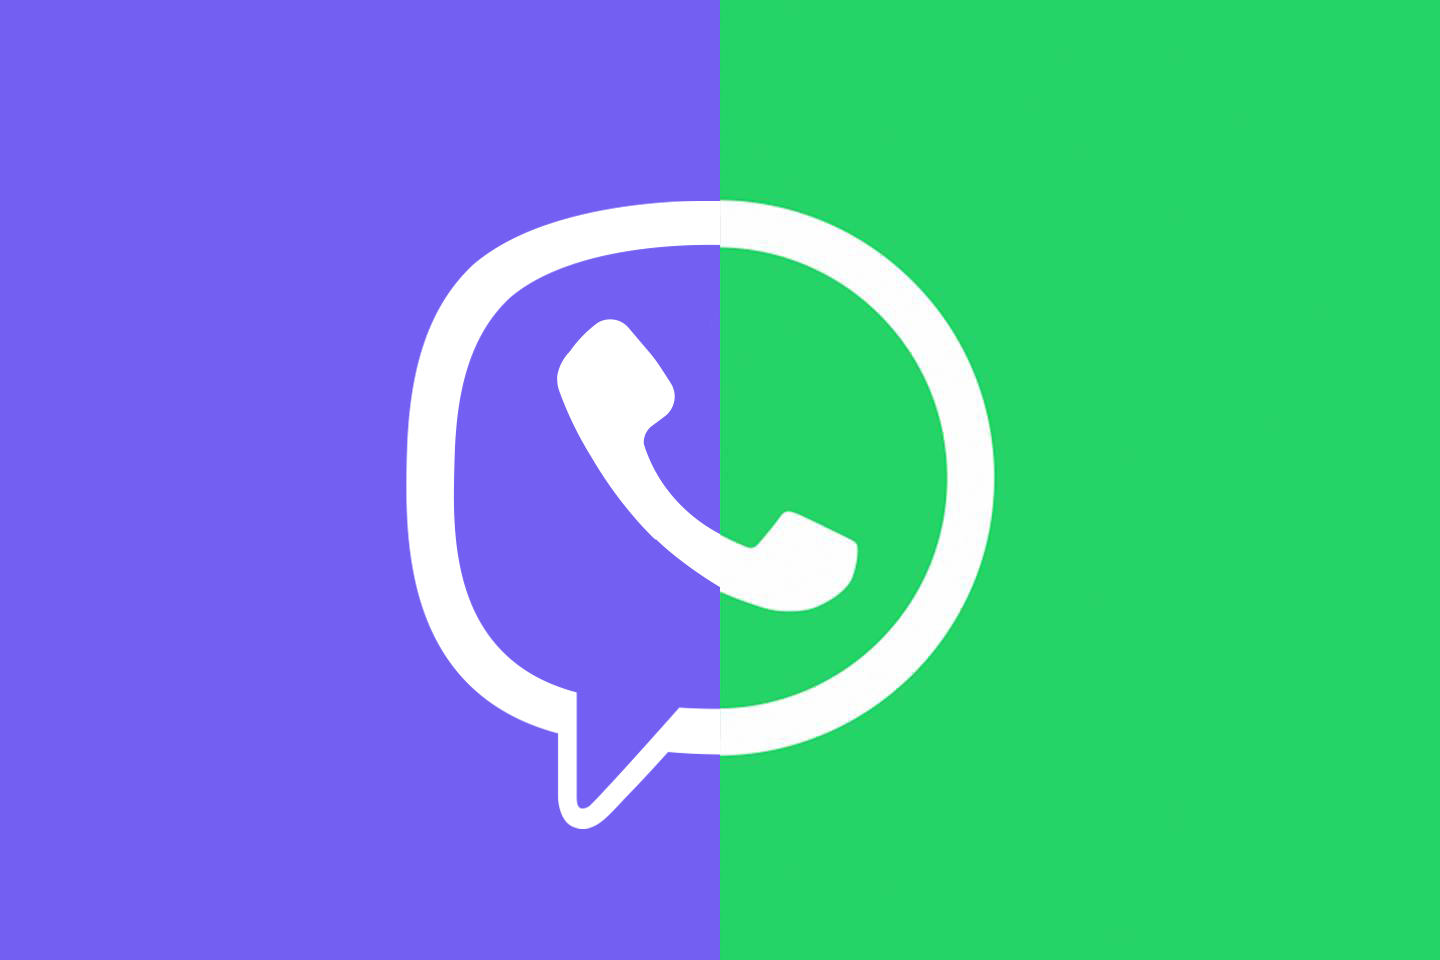 1.Outraged by WhatsApp's privacy update, Viber's CEO calls on users to seek alternatives